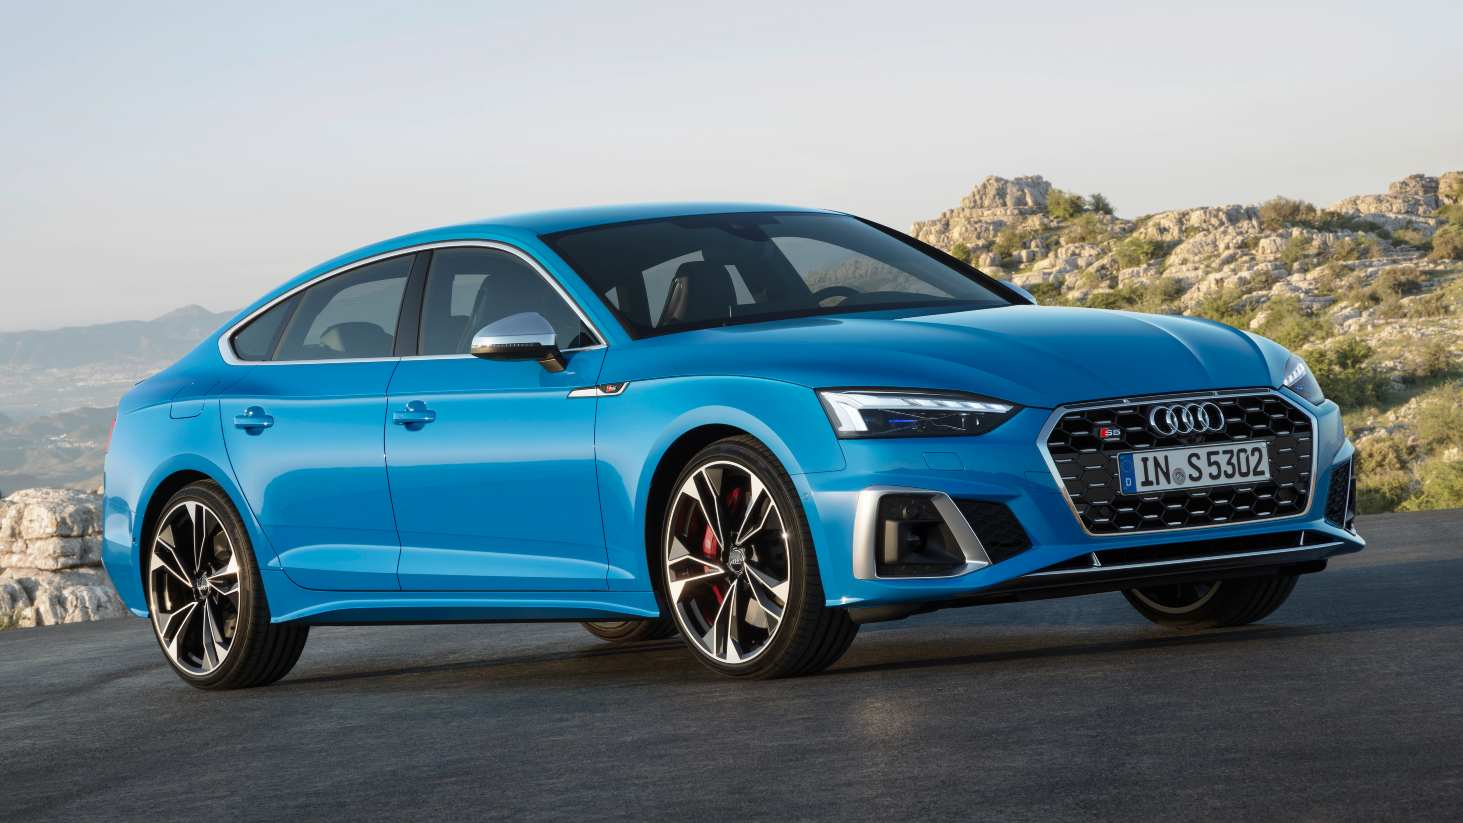 Audi S5 Sportback facelift to be launched in India on 22 March, gets 354 hp V6 petrol engine- Technology News, FP